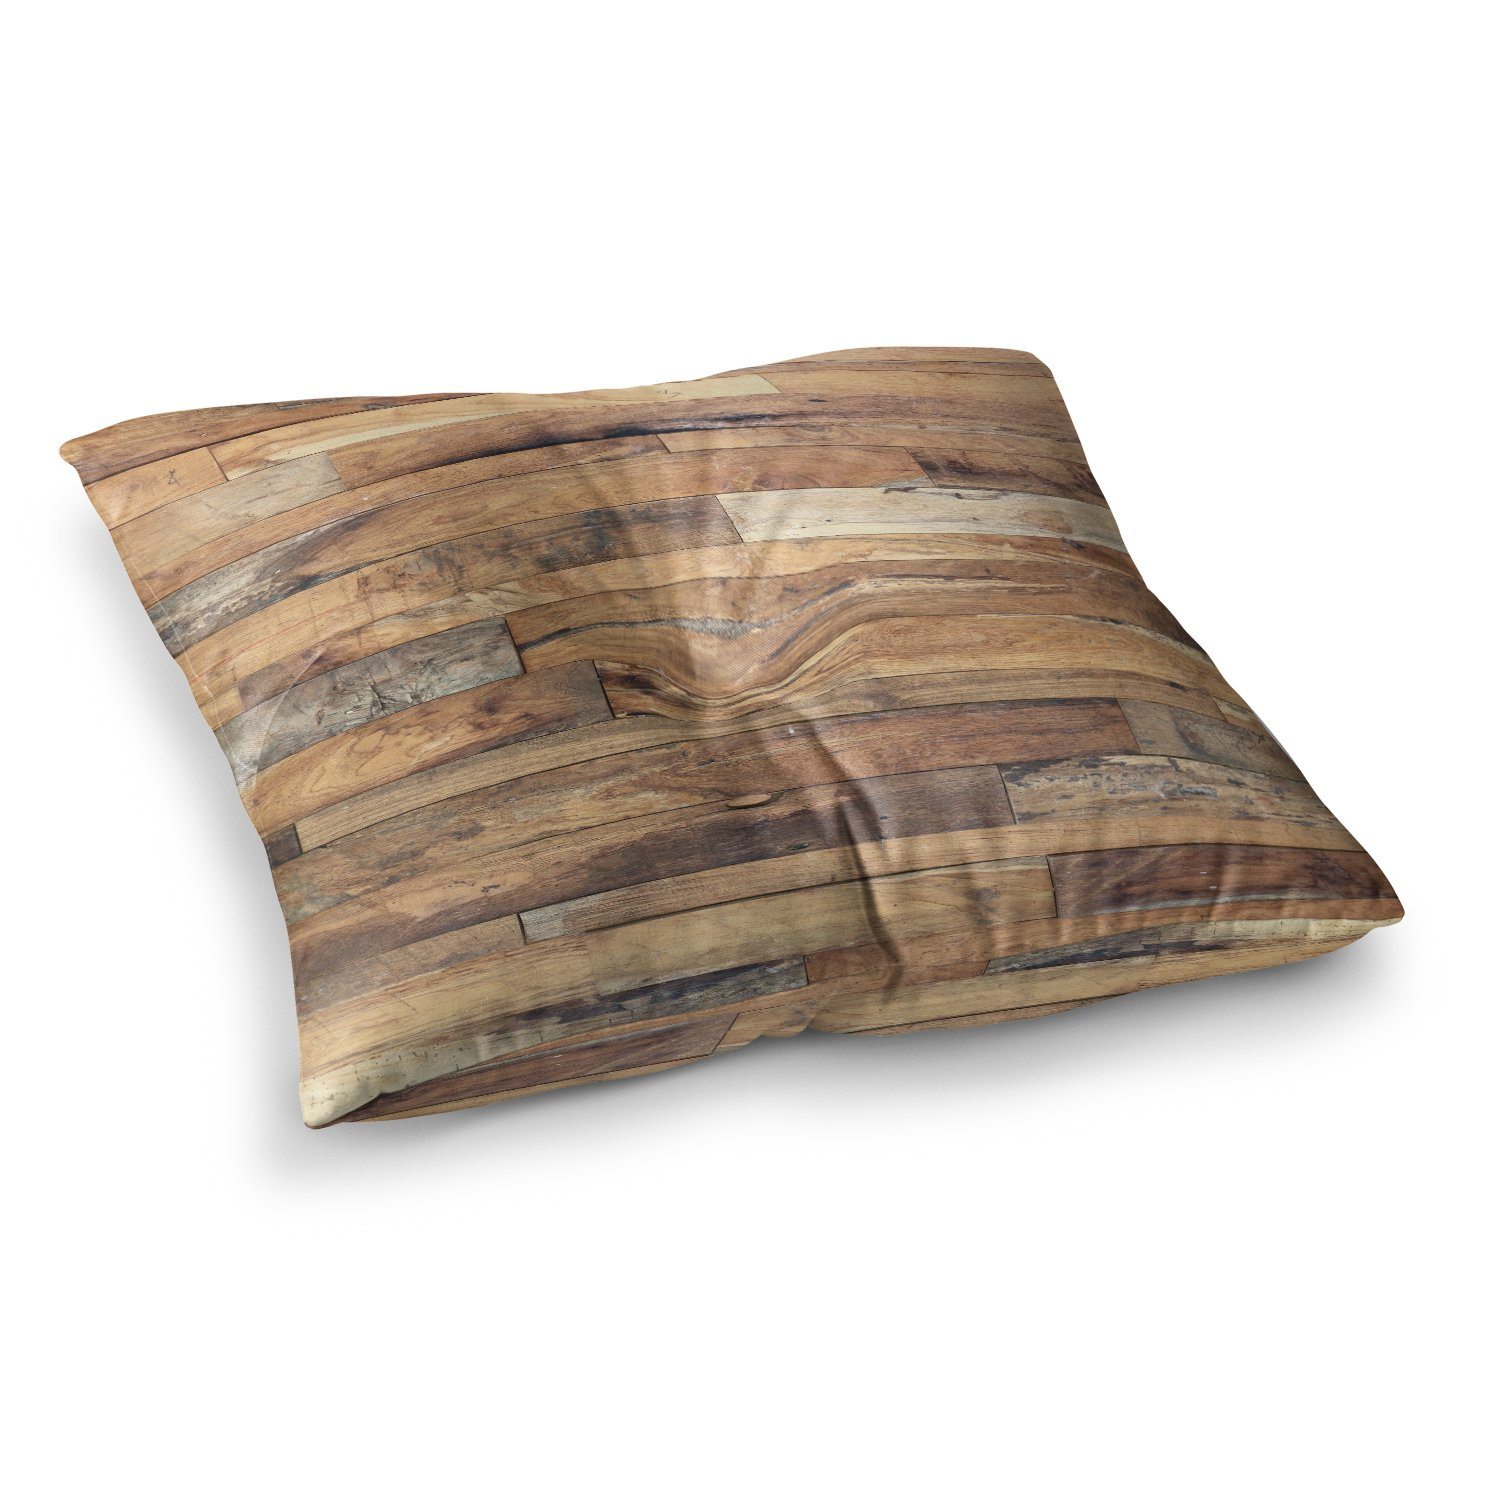 KESS InHouse Susan Sanders Campfire Wood Rustic Square Floor Pillow, 26'' x 26'' by Kess InHouse (Image #1)